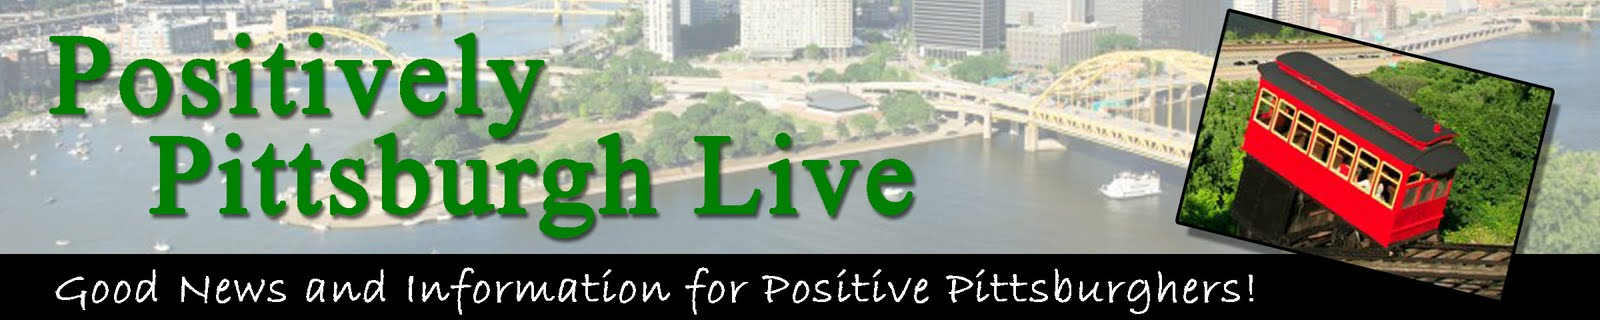 Positively Pittsburgh Live